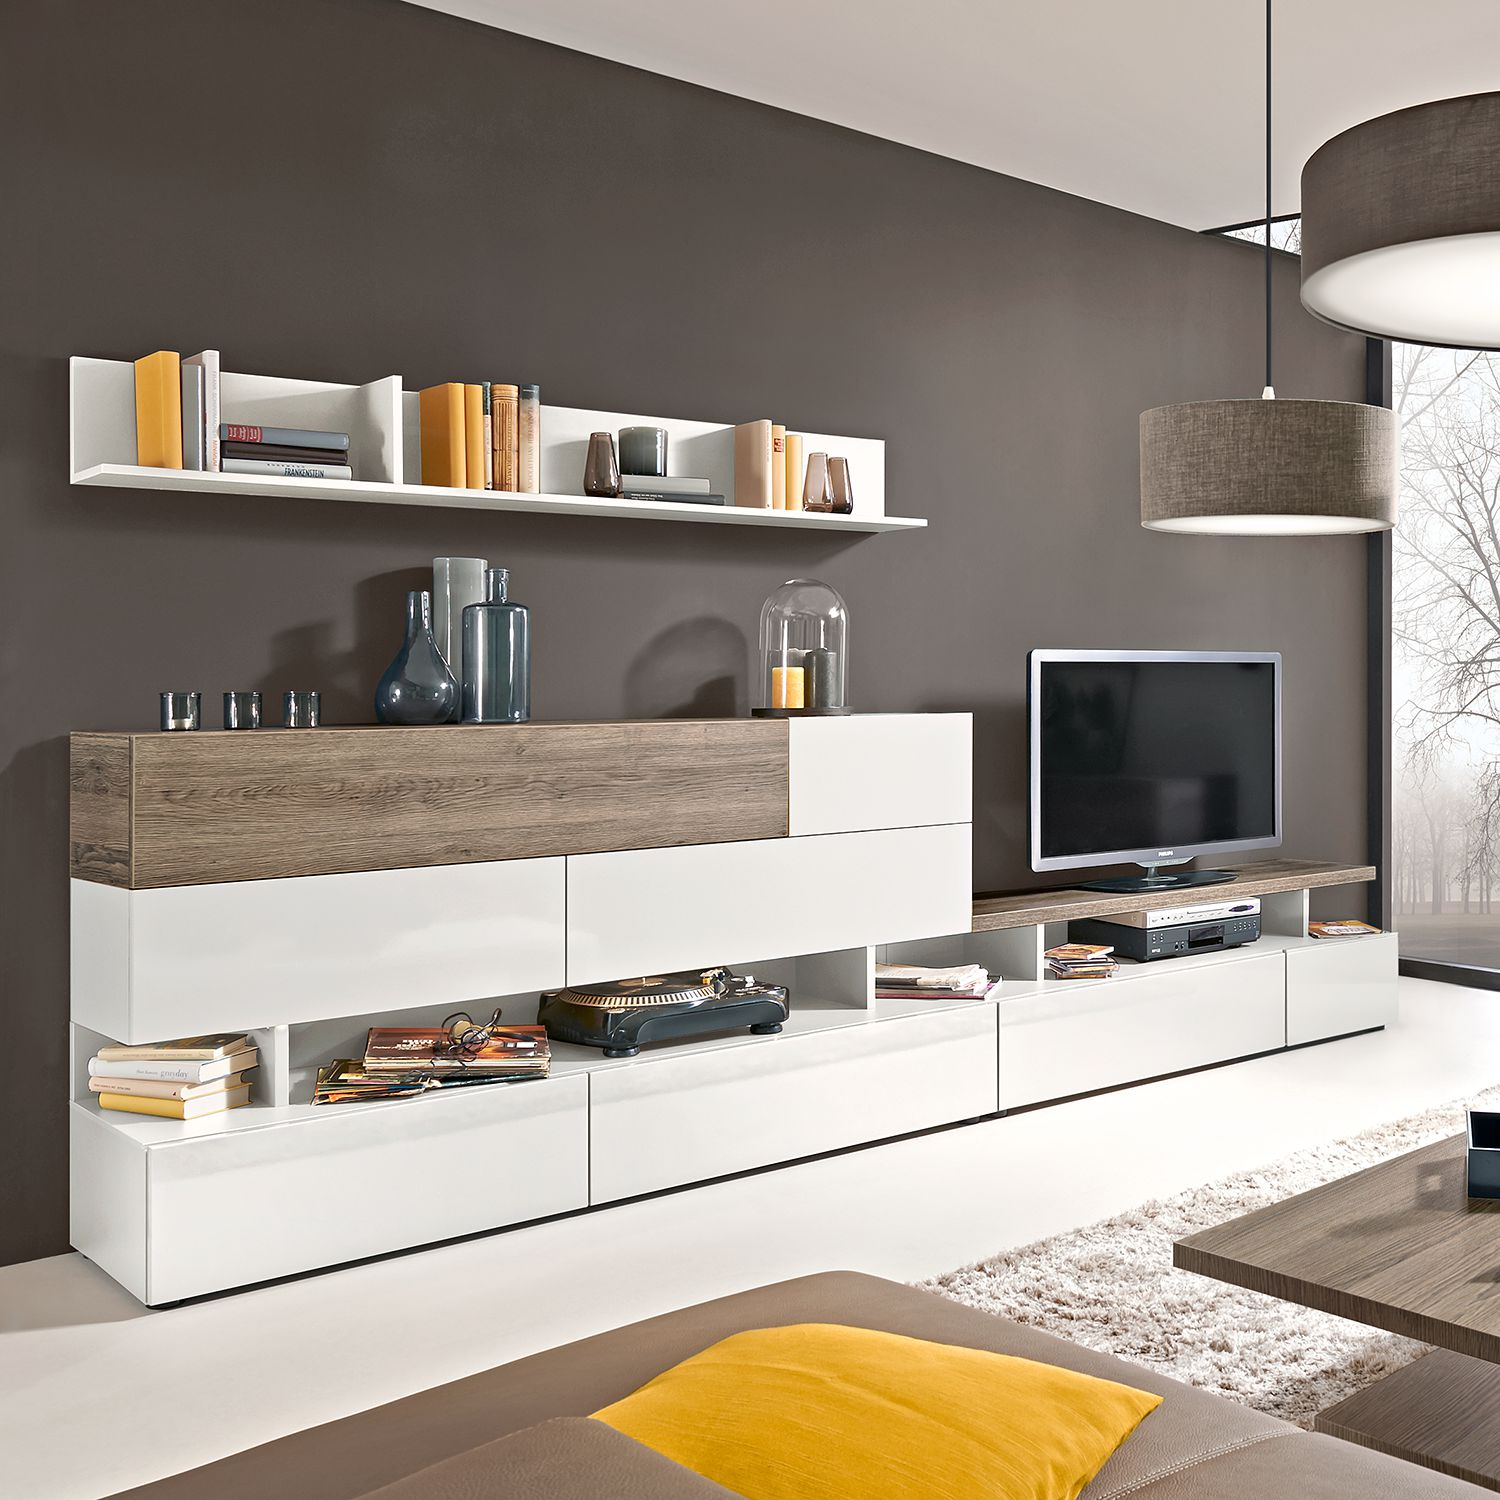 wohnwand holz dunkel neuesten design kollektionen f r die familien. Black Bedroom Furniture Sets. Home Design Ideas